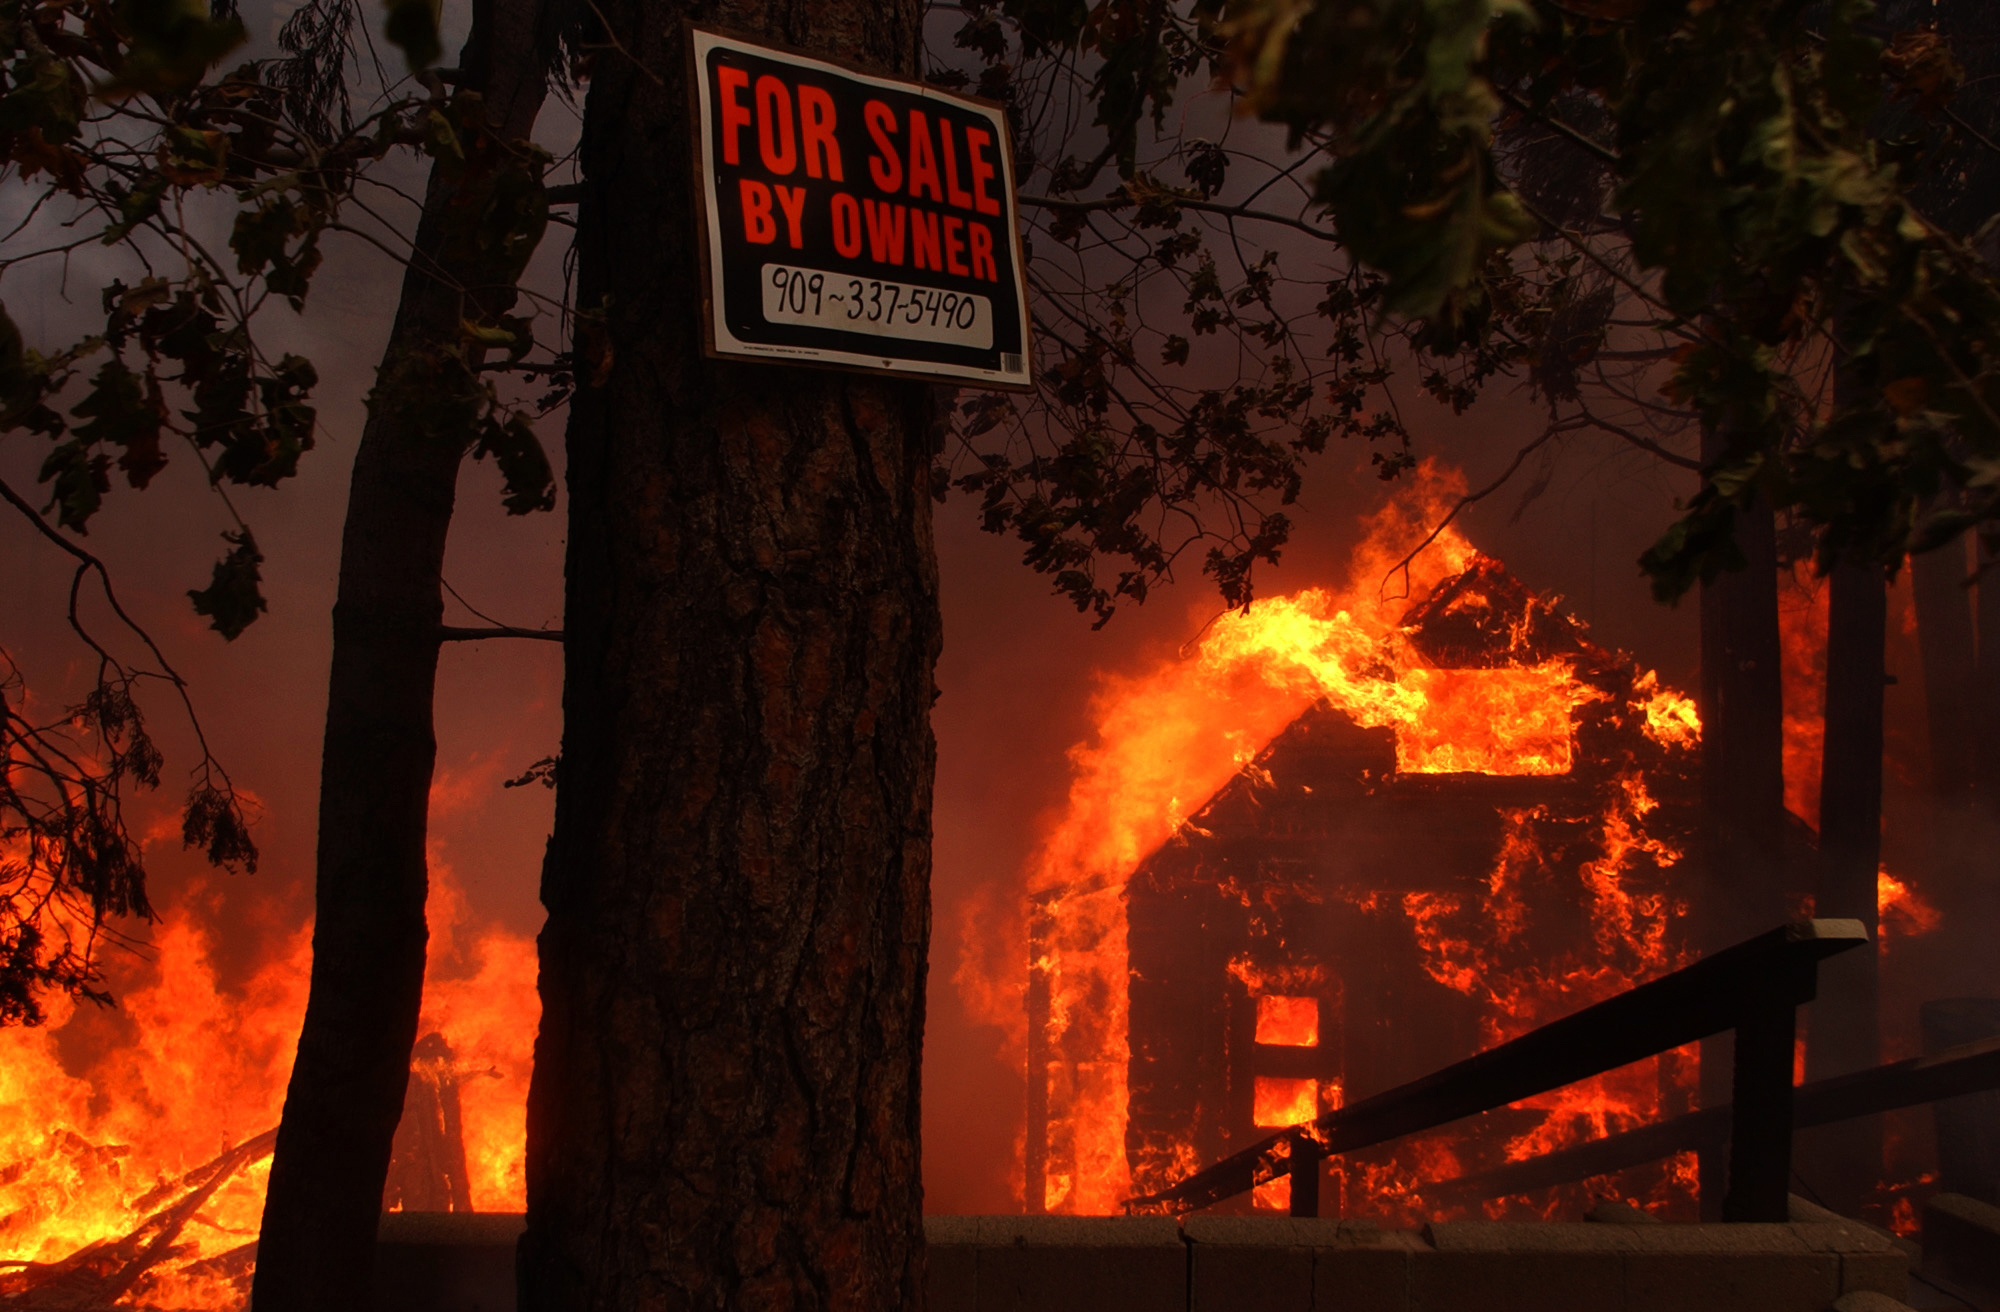 A For Sale sign looms in the foreground as an entire neighborhood burns to the ground, Wednesday afternoon along Hook Creek Road in the Cedar Glen area of Lake Arrowhead.